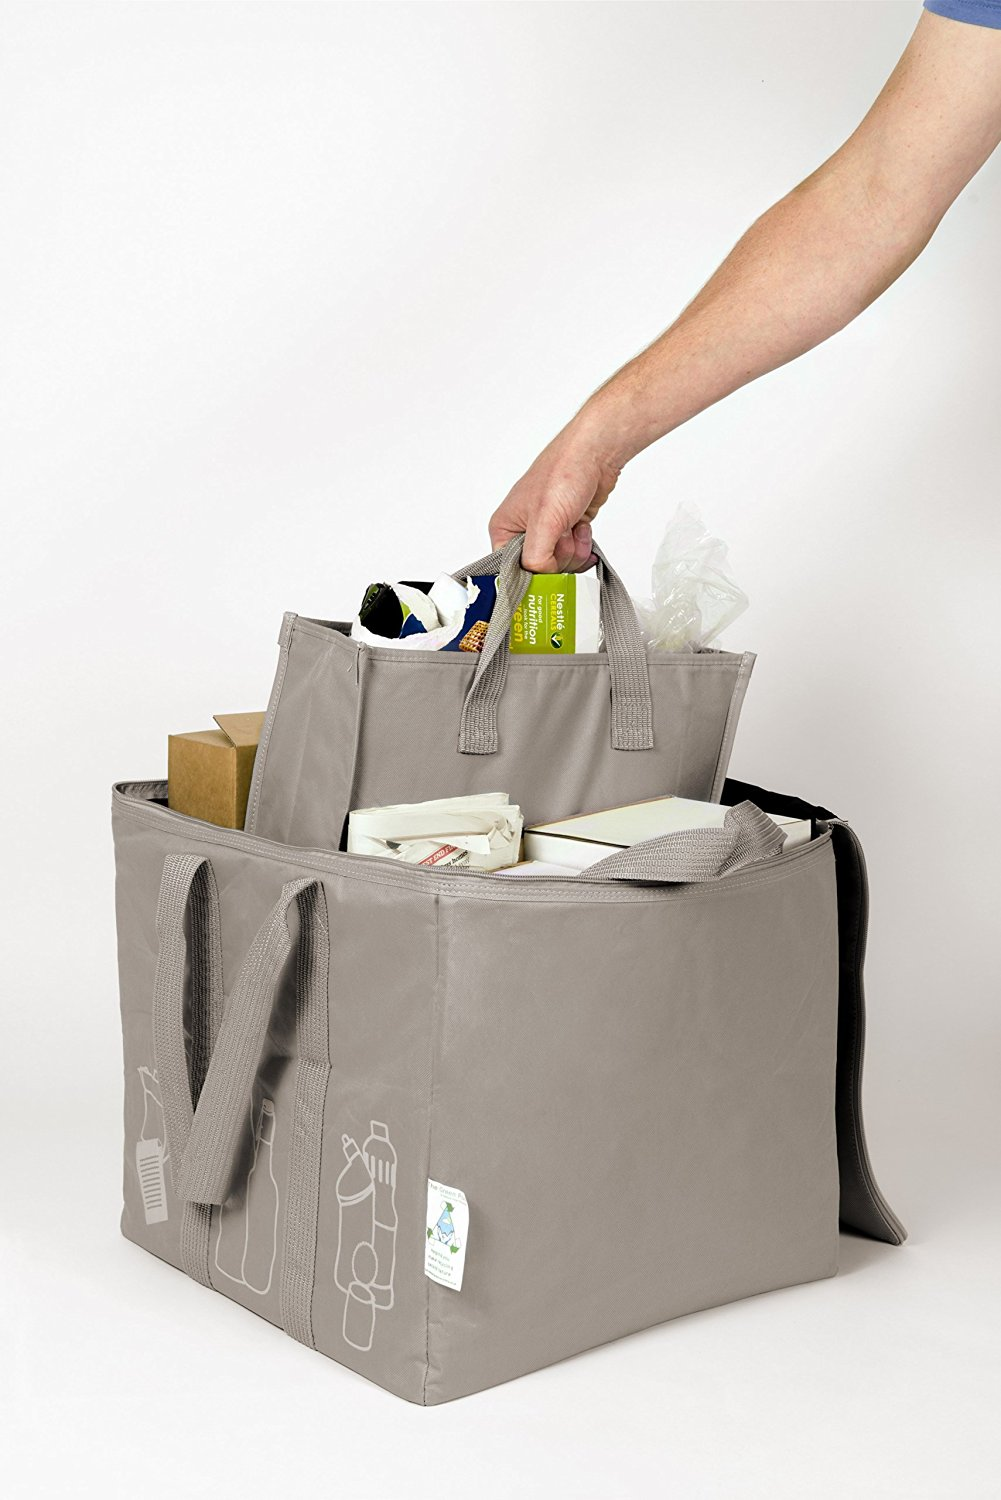 The Green Pod Recycling Bag - with removable bags inside (Grey, 80 Liters)